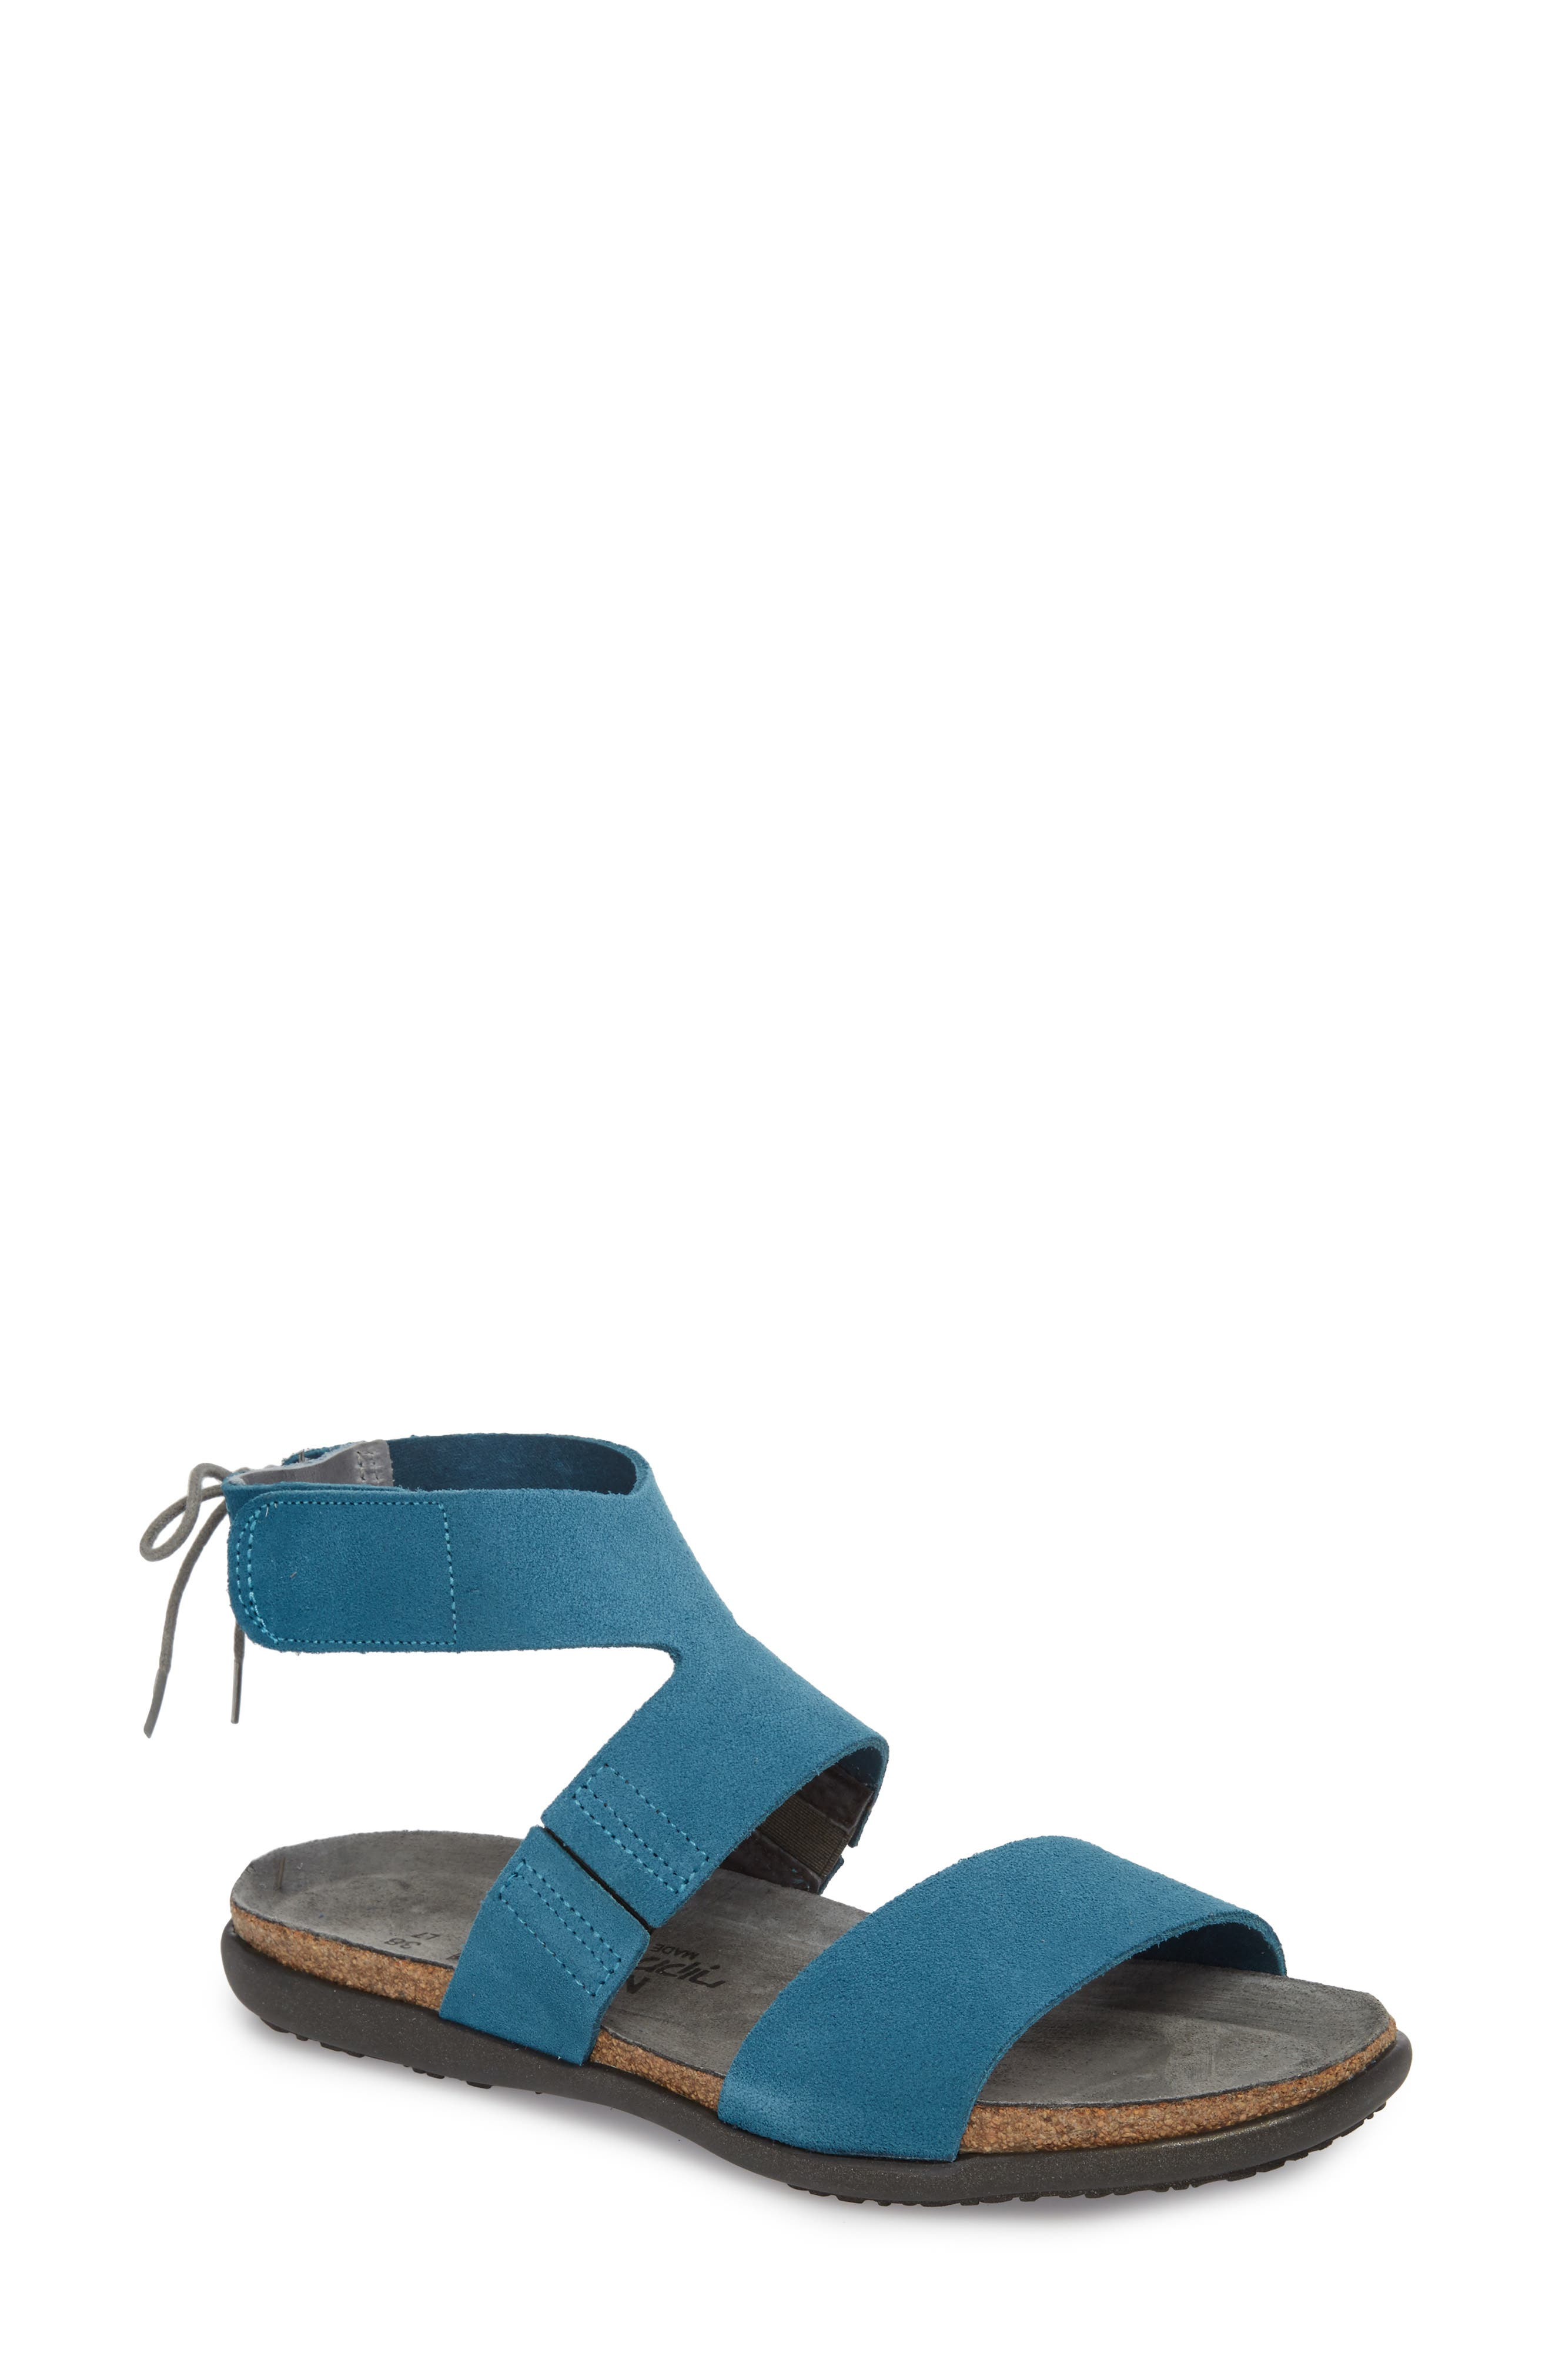 Larissa Ankle Strap Sandal,                             Main thumbnail 4, color,